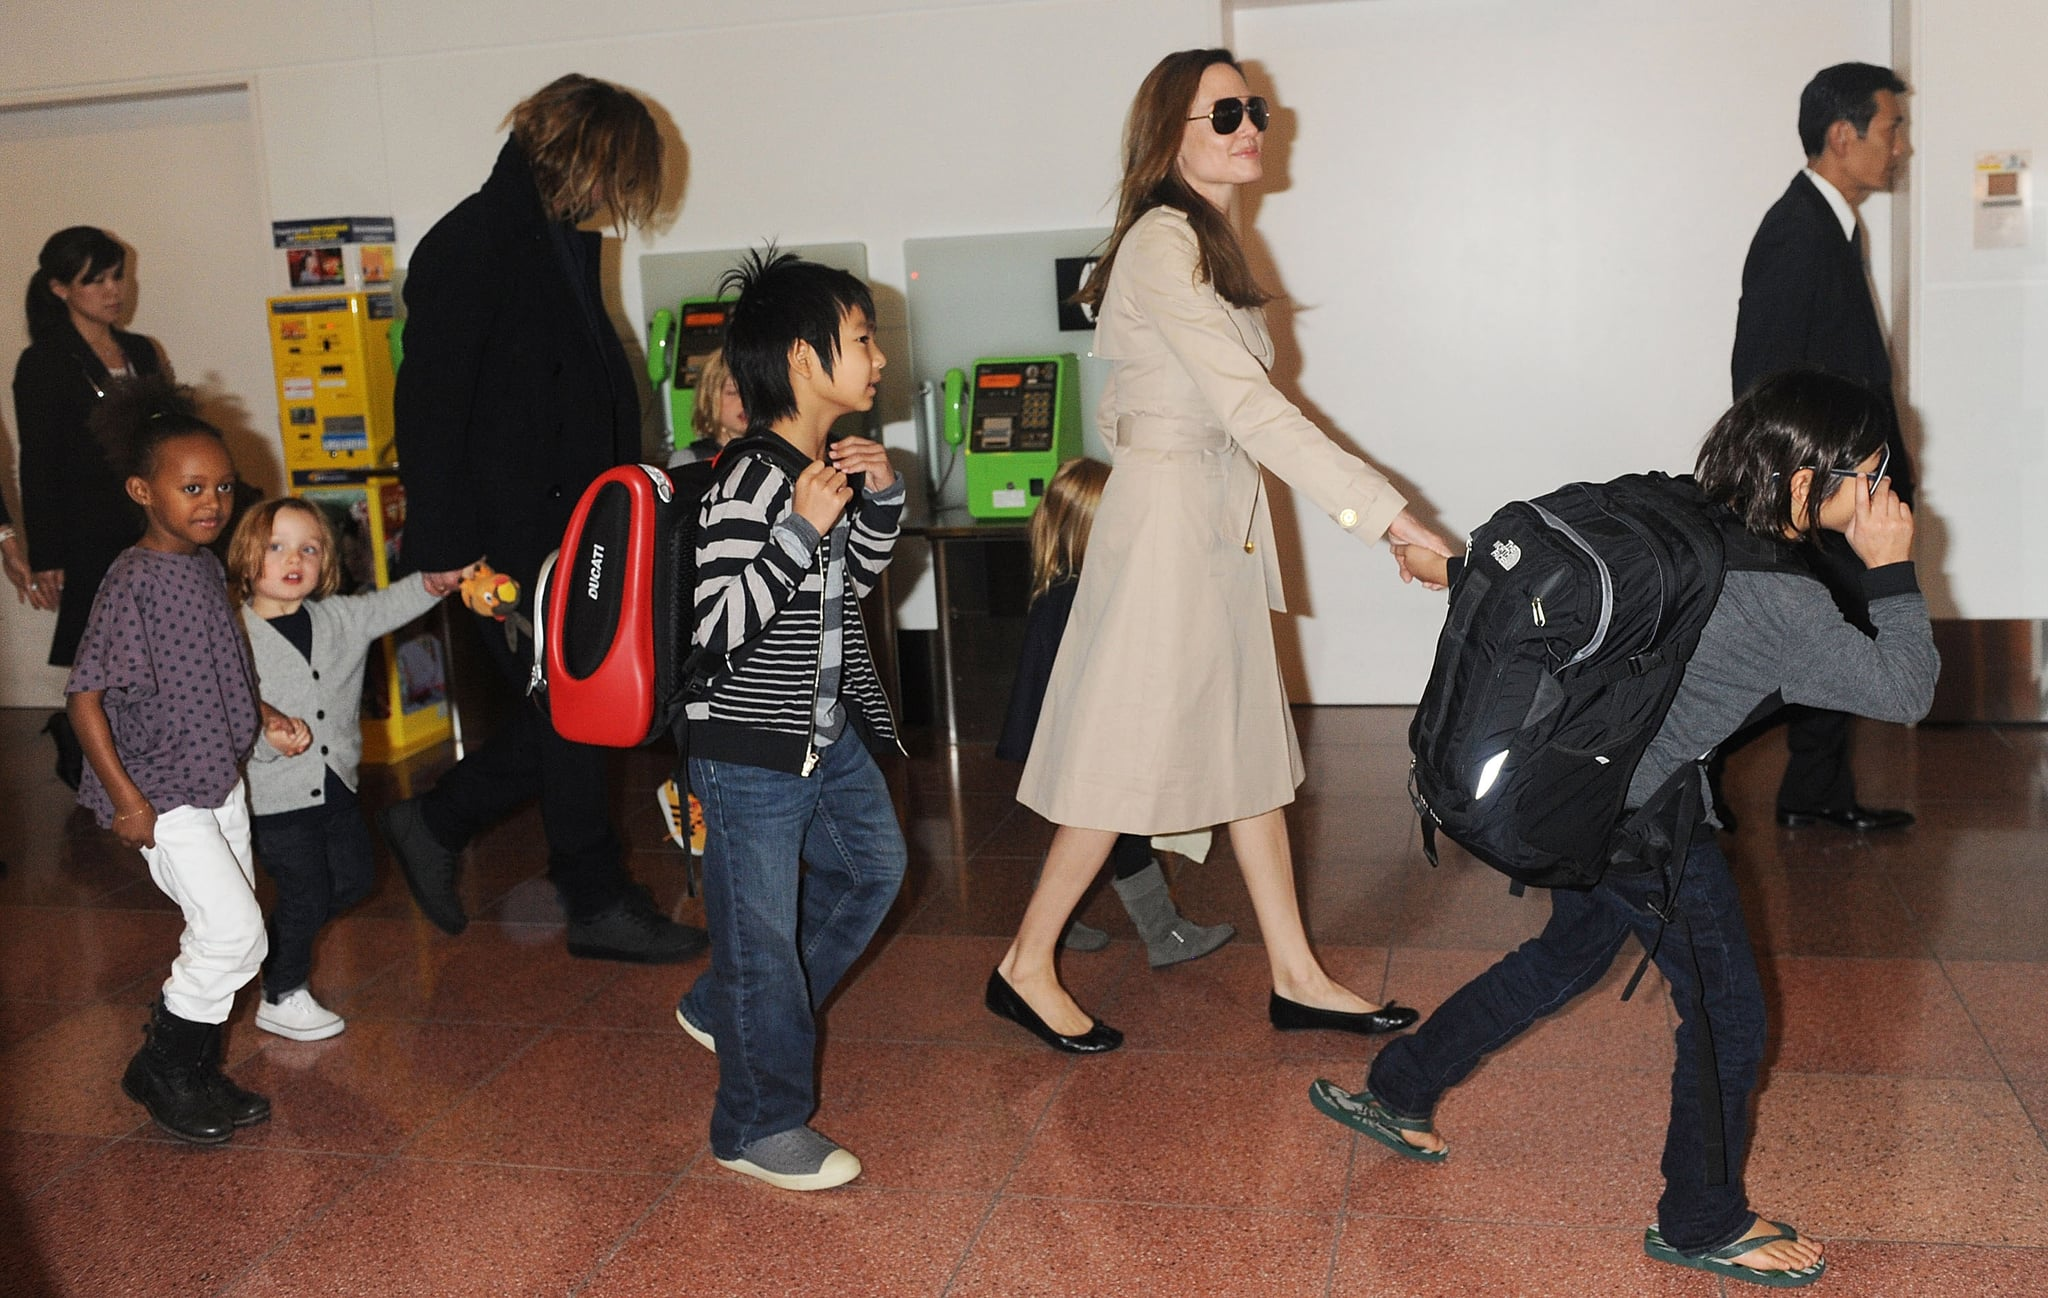 The crew headed to Japan for Brad to promote Moneyball.